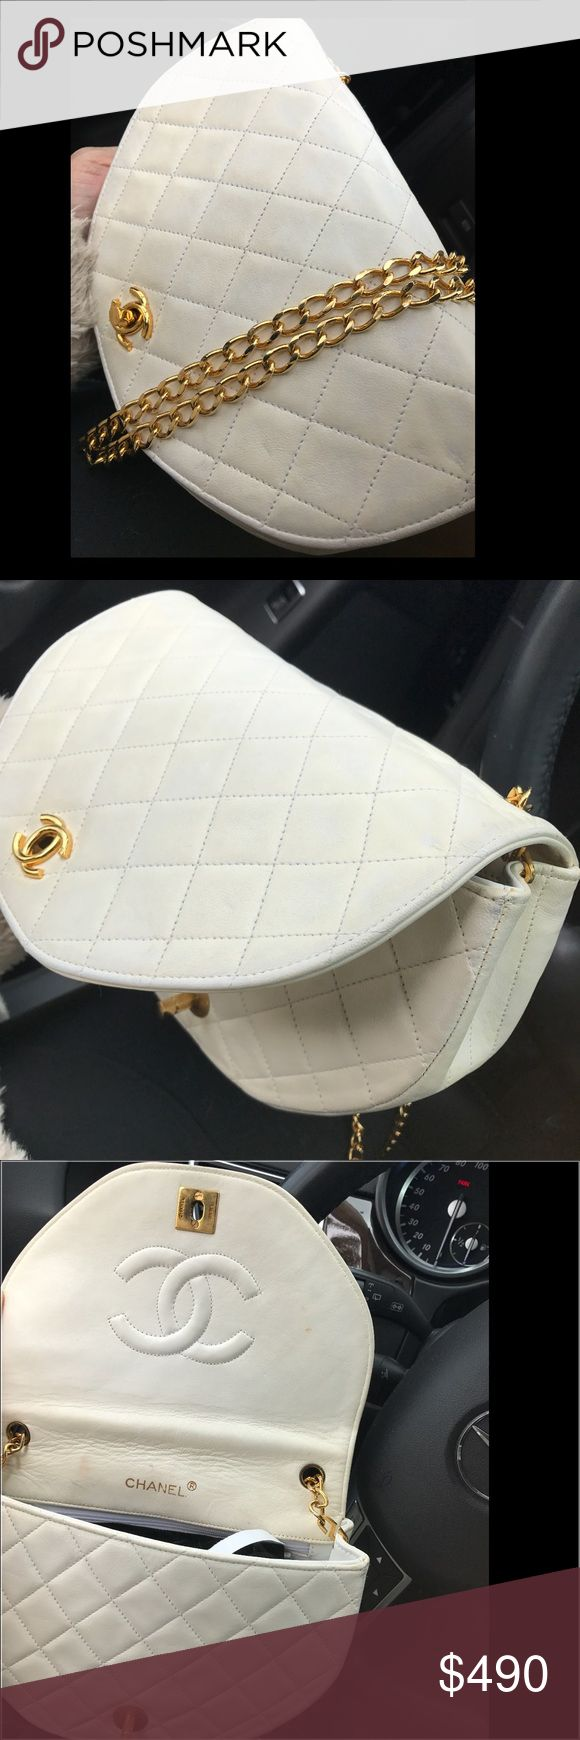 CHANEL Bag Used, vintage 24k gold chain still very shiny, the bag is white but now is turning beige, Shows signs of use, in the back have some black stains . Inside the bag have date code and authentication card. ( No stamp) please review pictures before purchase. Inside the bag fit an iPhone 7 plus plus small wallet & car key etc.. CHANEL Bags Crossbody Bags